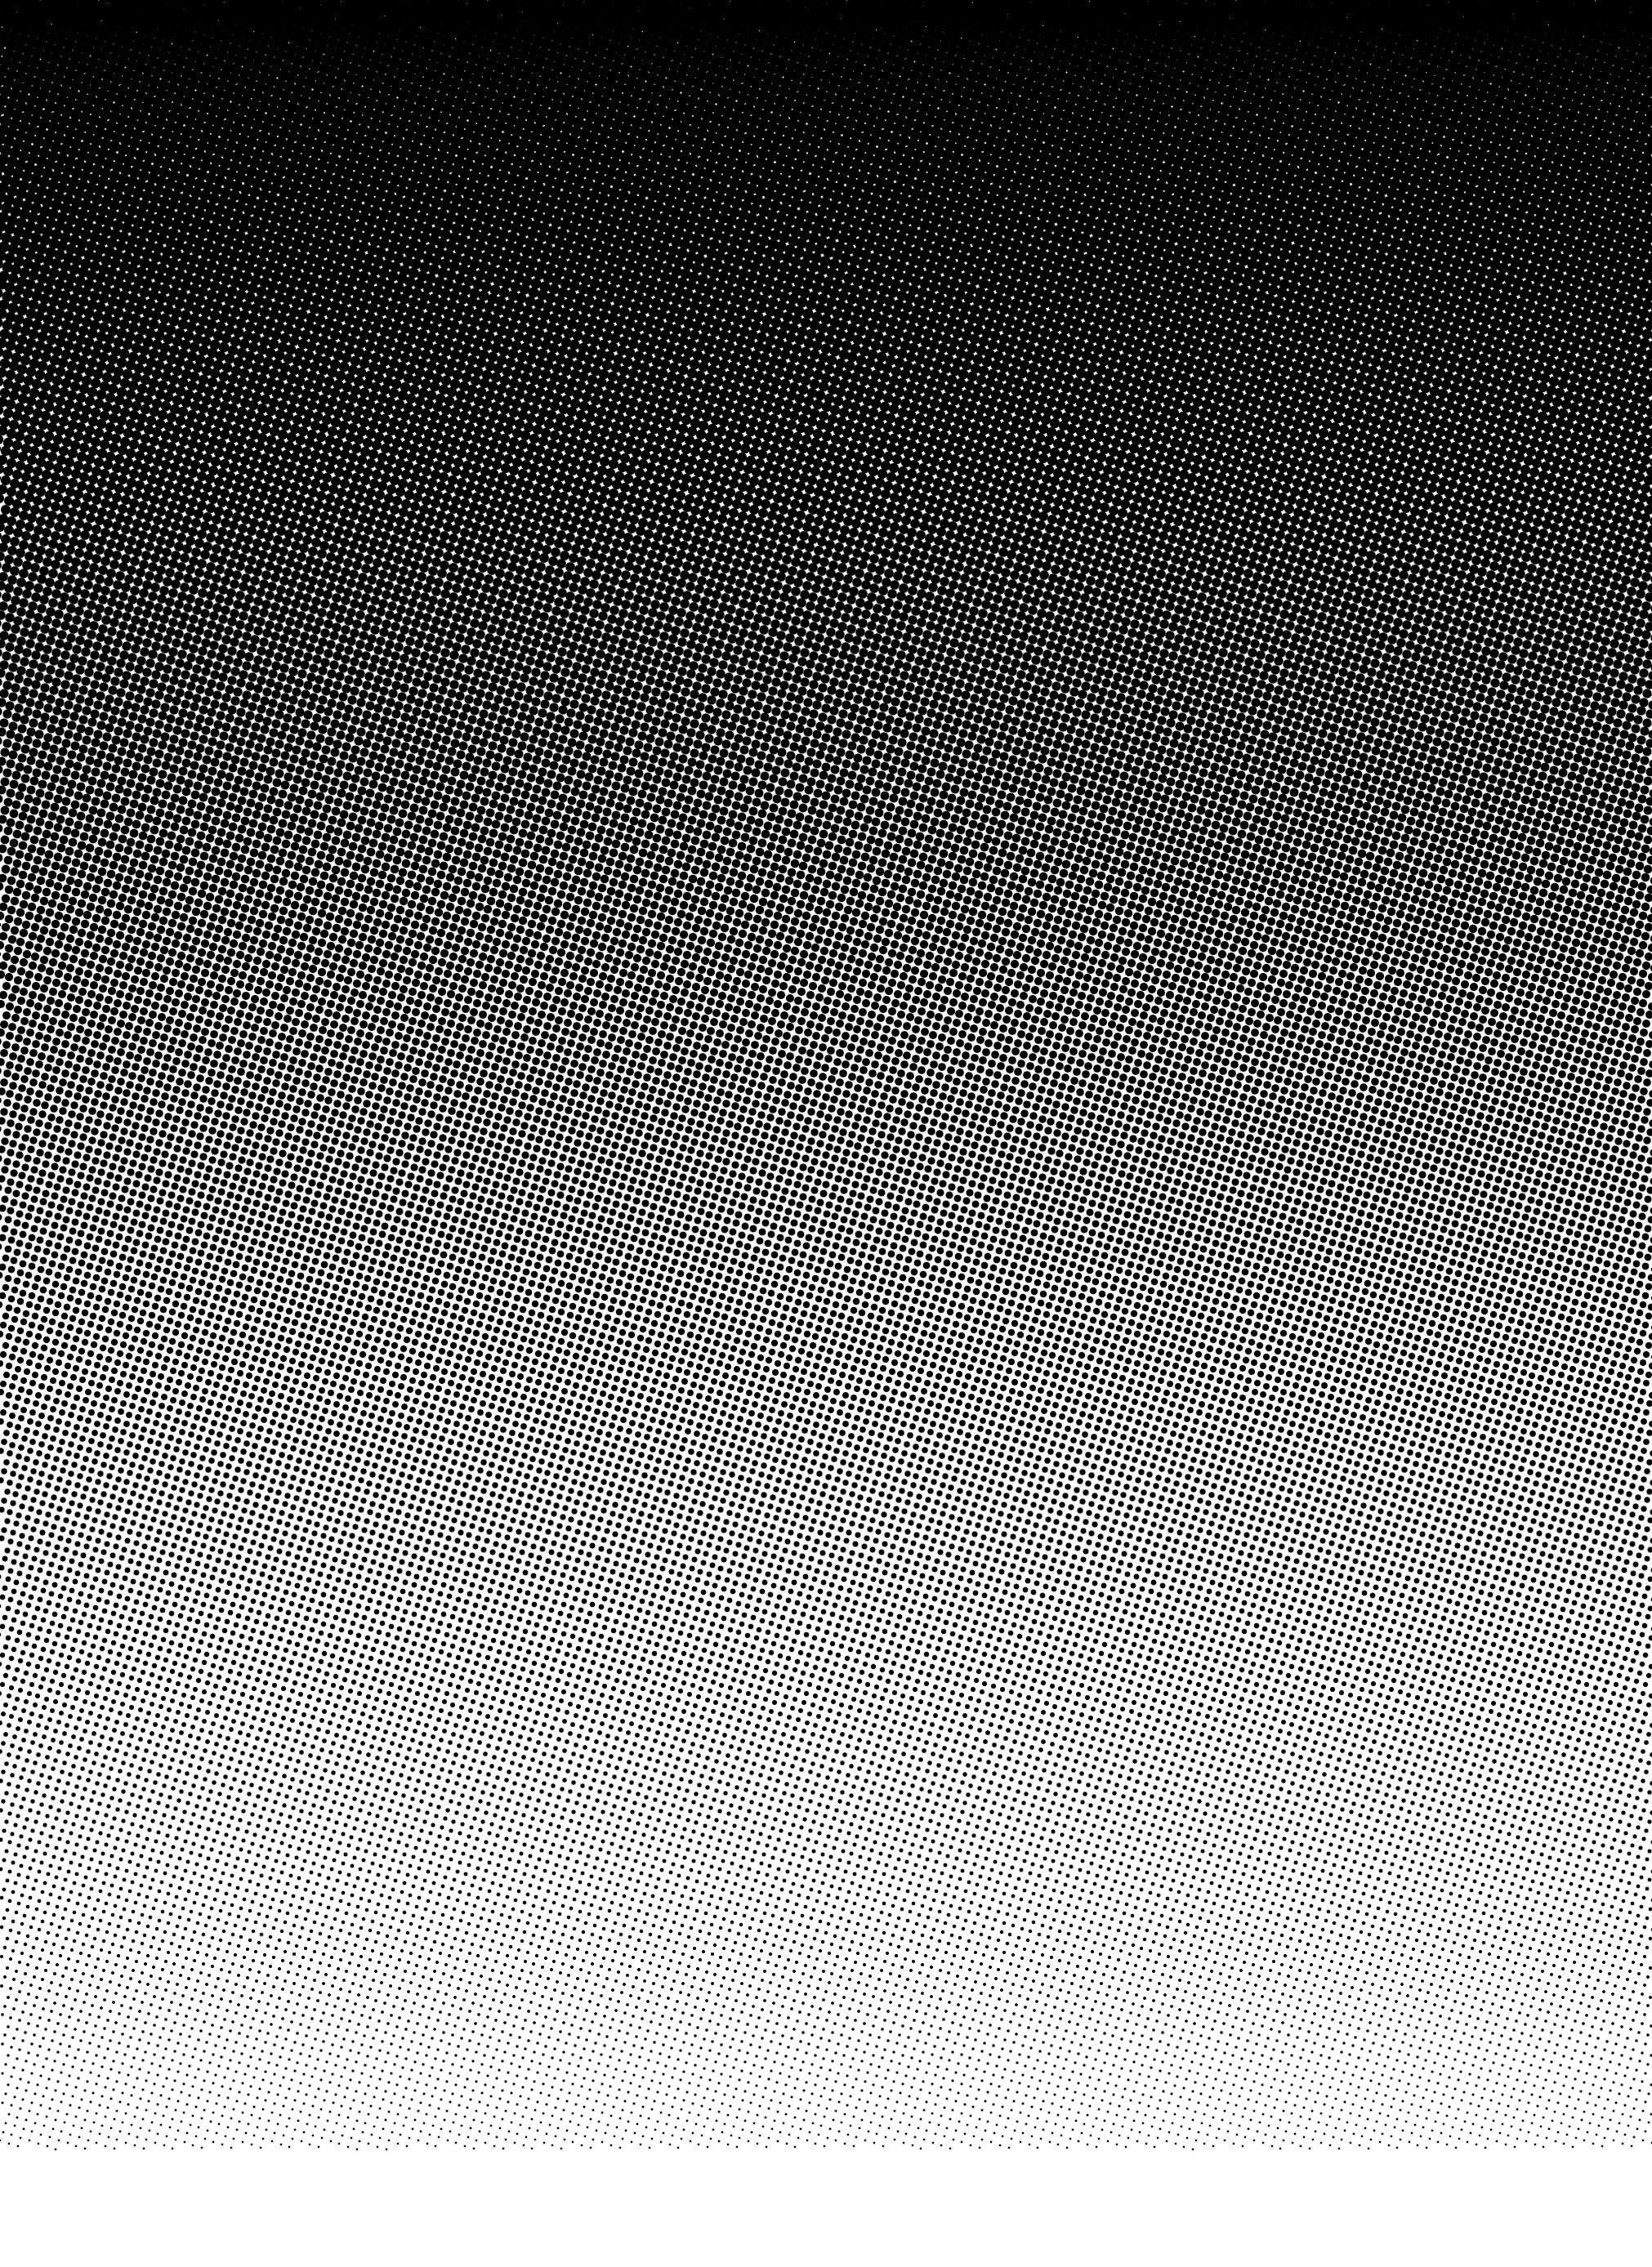 Long Gradient 1 By Screentone Jpg 2022 2775 Screentone Comic Book Background Comic Book Layout